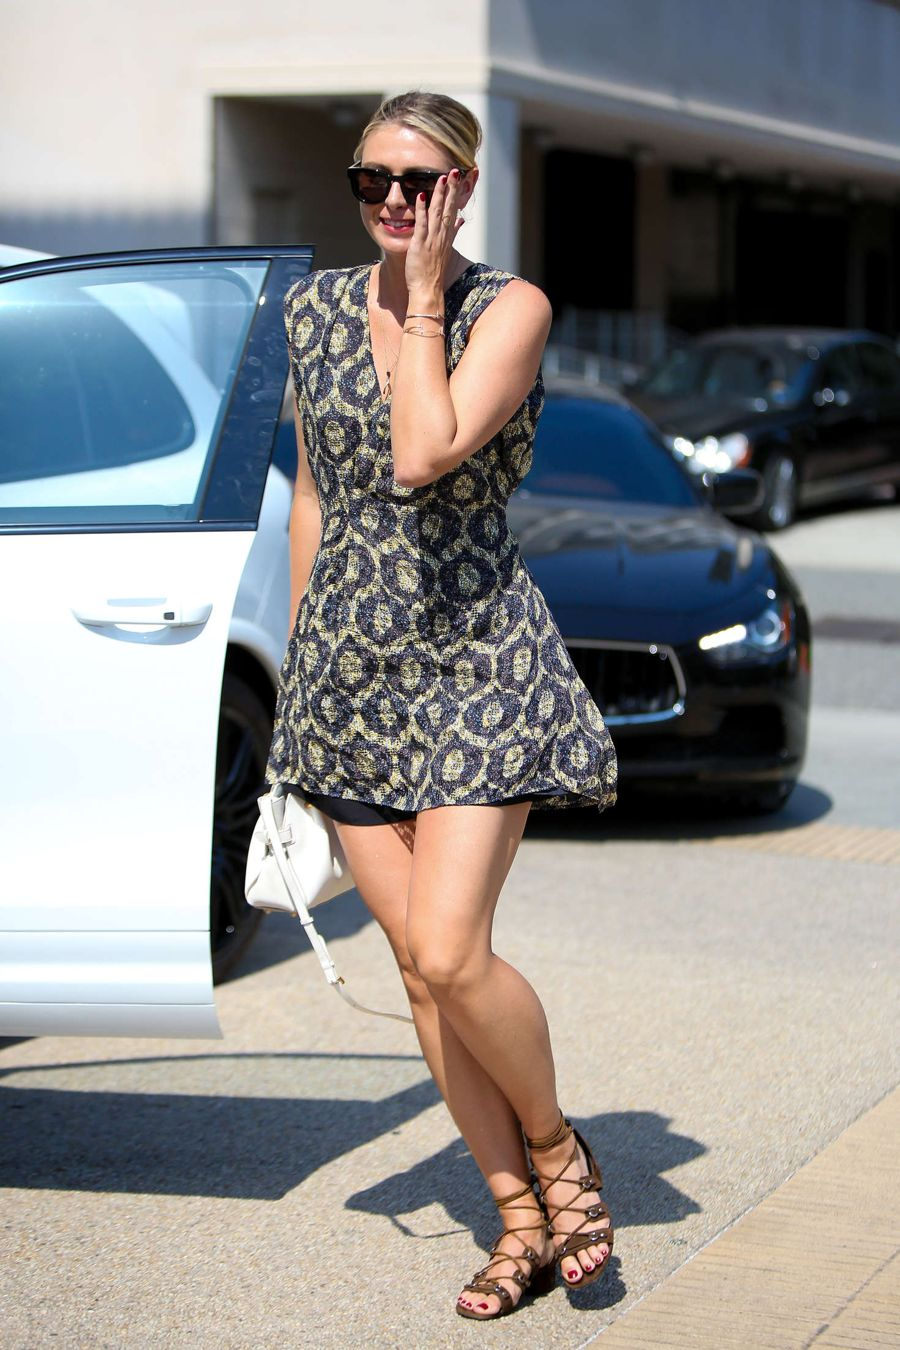 Maria Sharapova Dons a Short Sun Dress